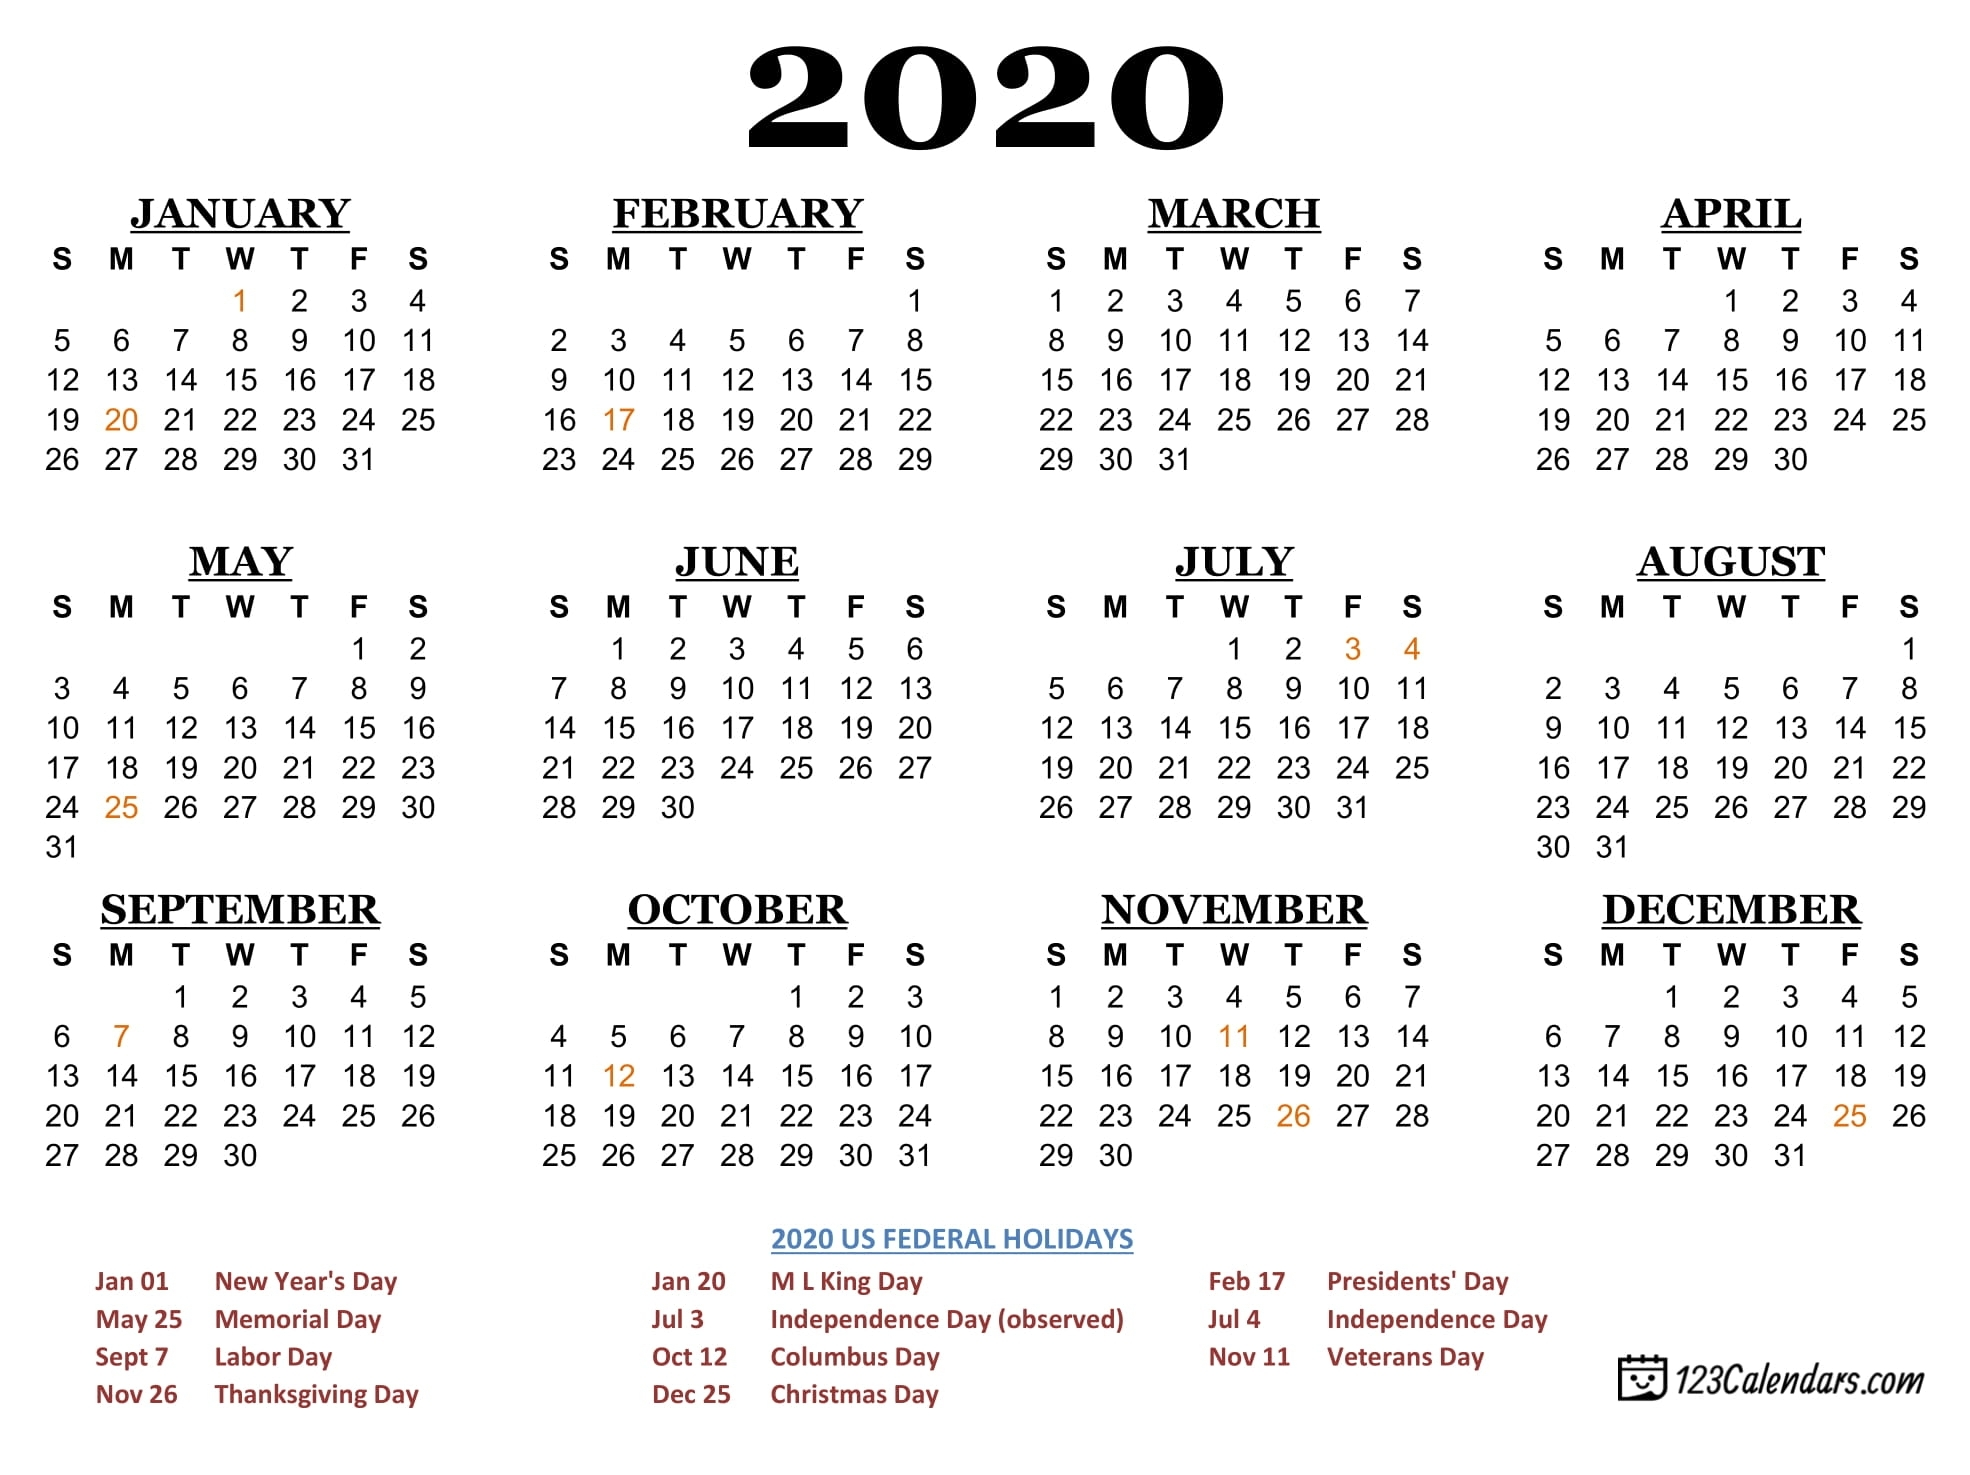 Free Printable 2020 Calendar | 123Calendars with 2020 Free Year Printable Calendars Without Downloading